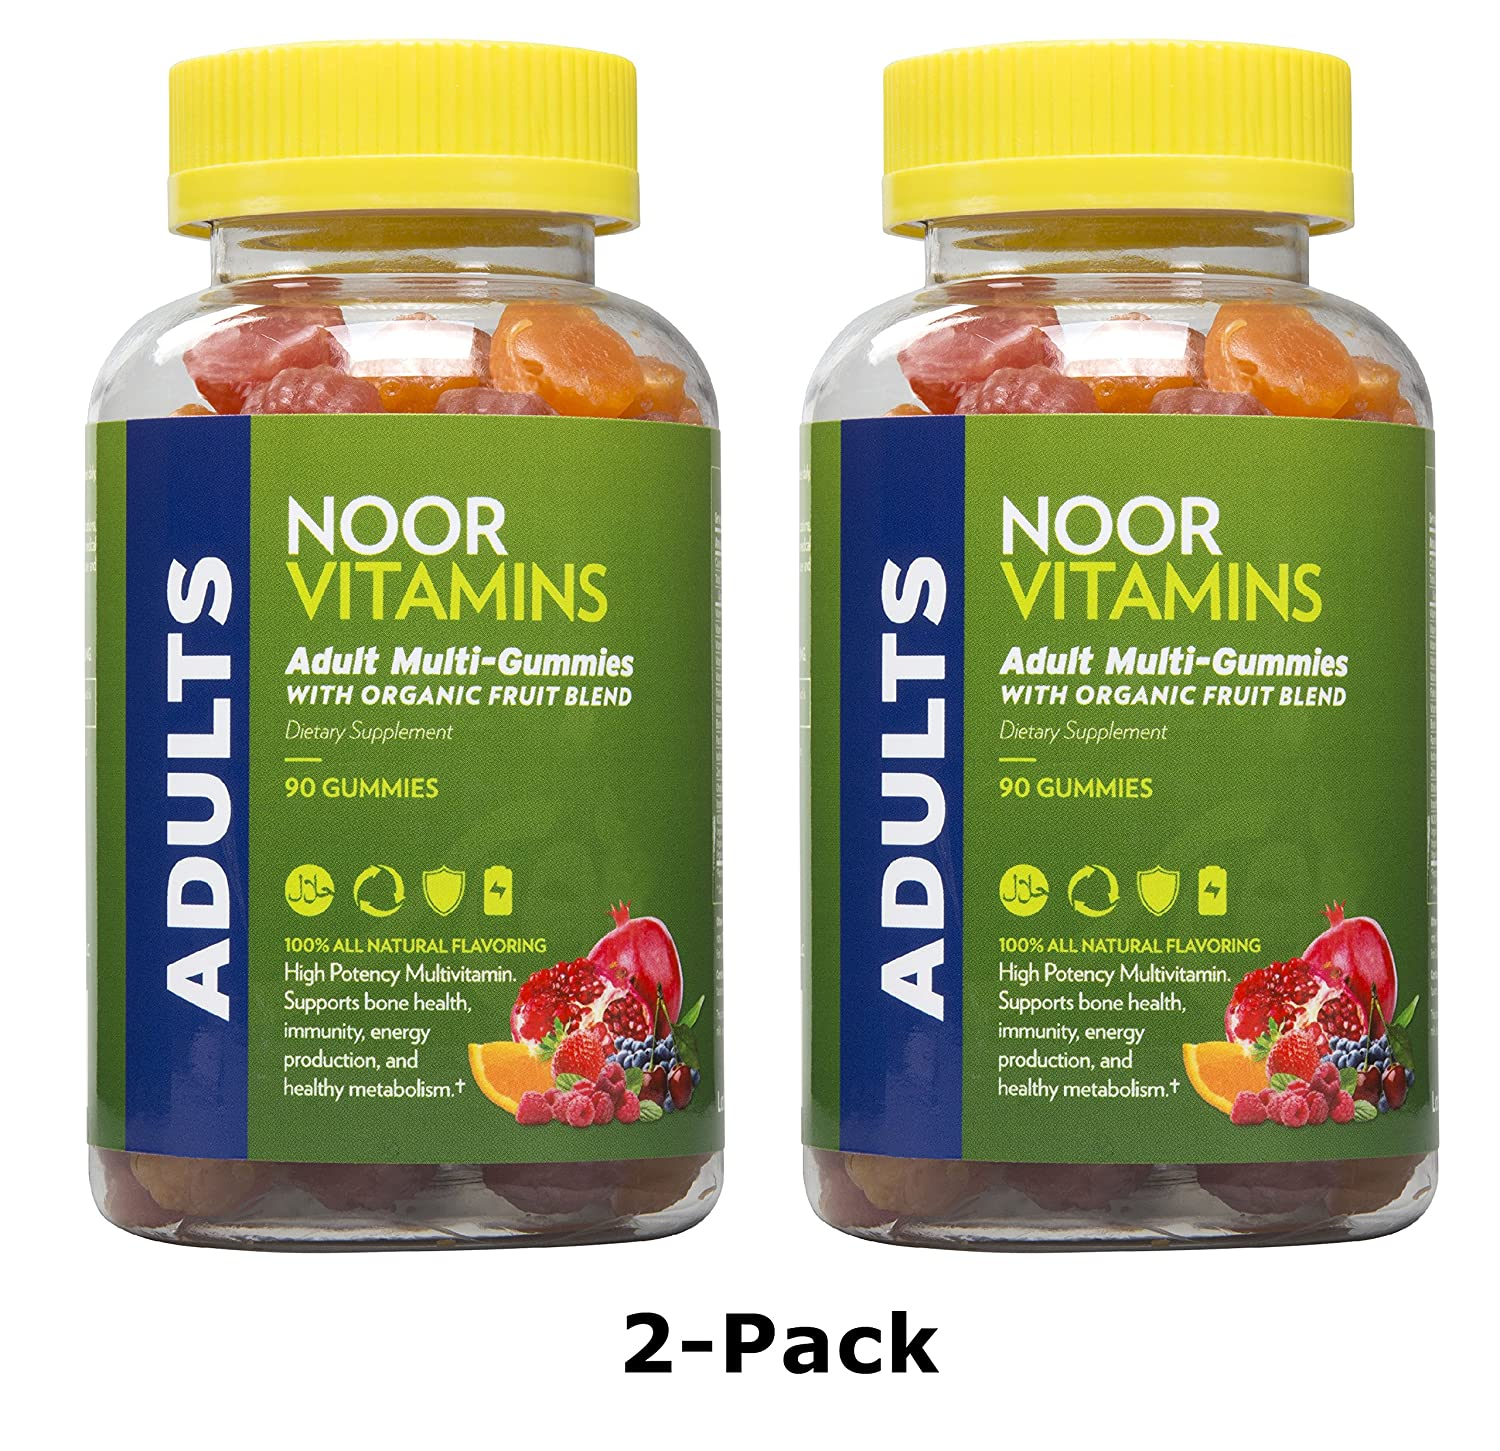 NoorVitamins 2-Pack Adult Gummy Multivitamins with Organic Fruit Blend – 90 Count Per Bottle – Halal Vitamins 2 Pack